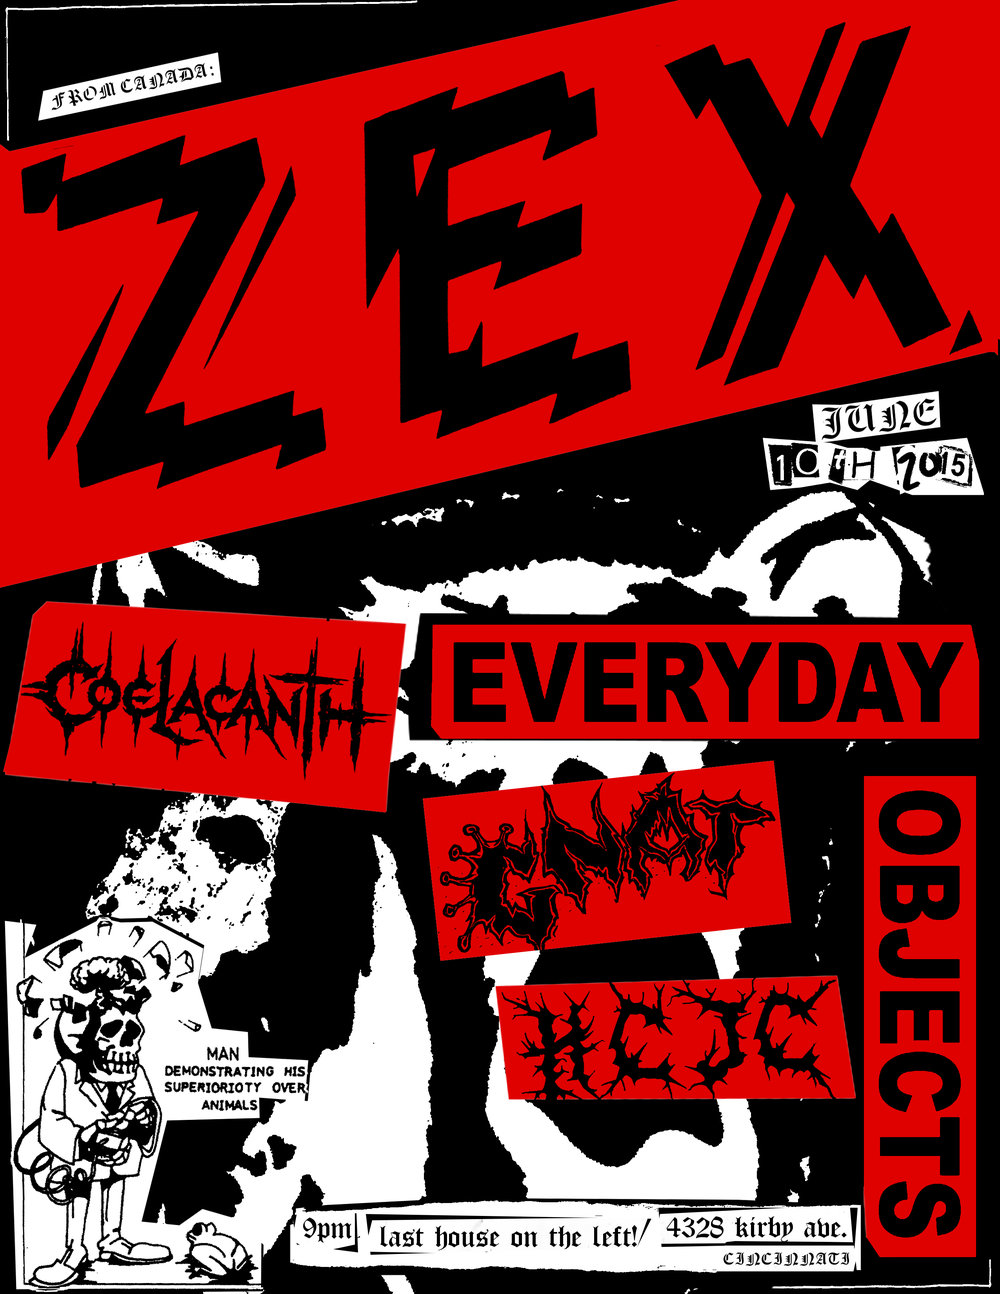 flyer-15.06.10-cincinnati-zex-red.jpg